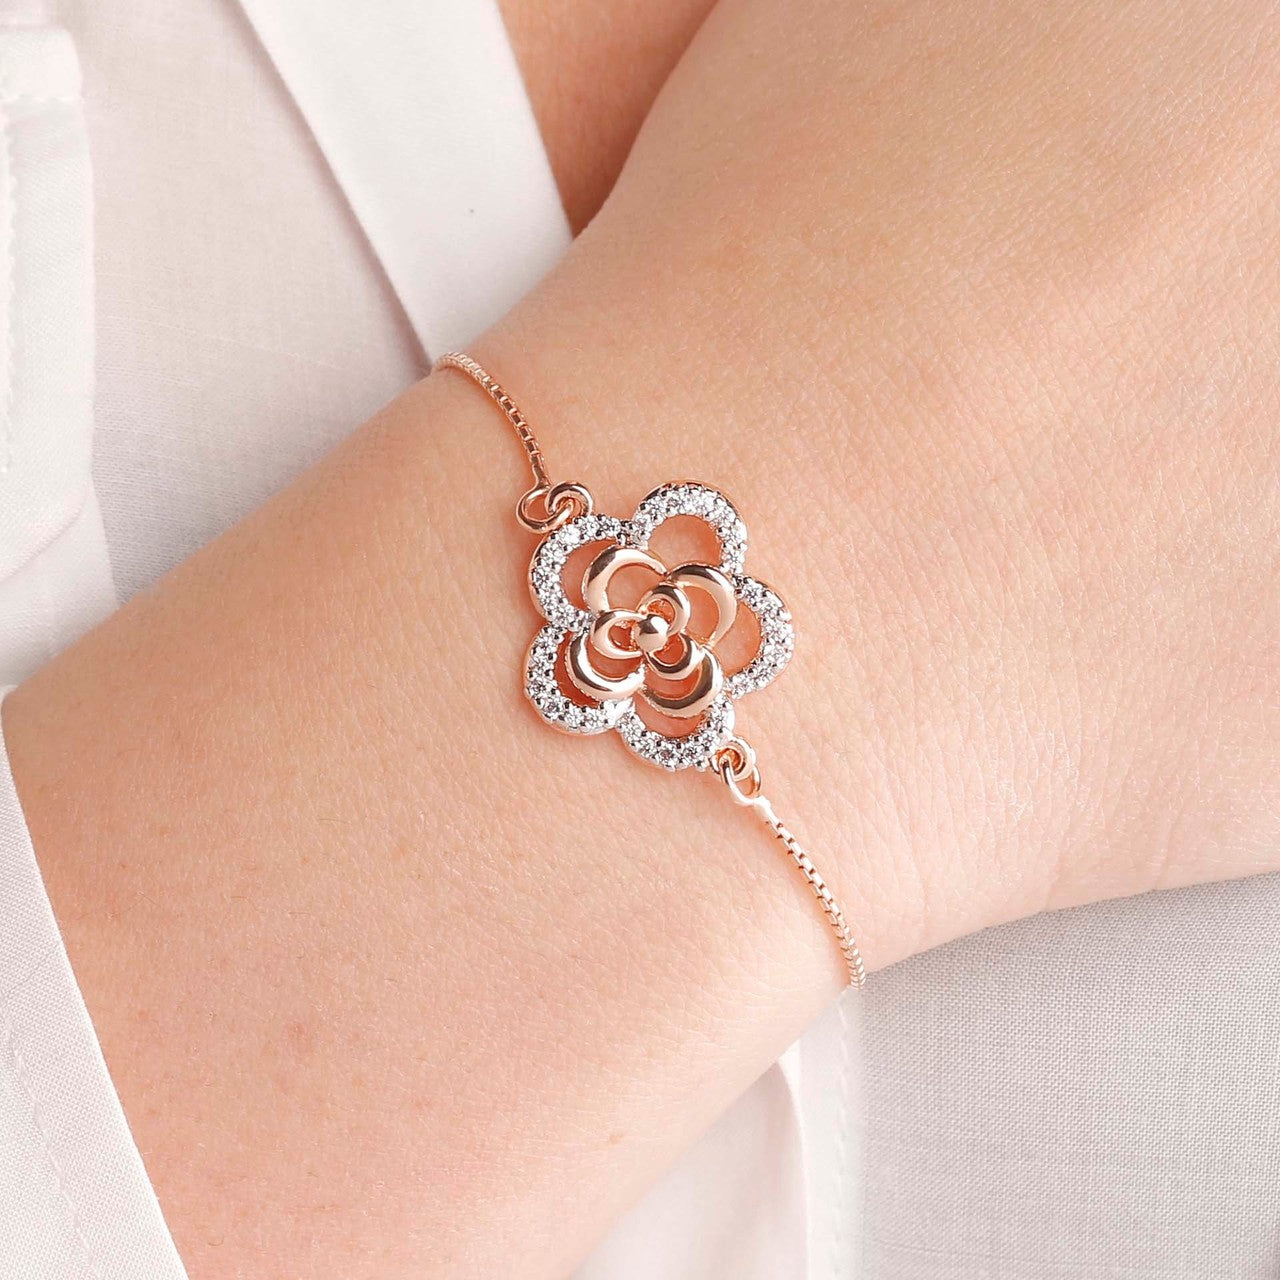 worn Flower friendship bracelet